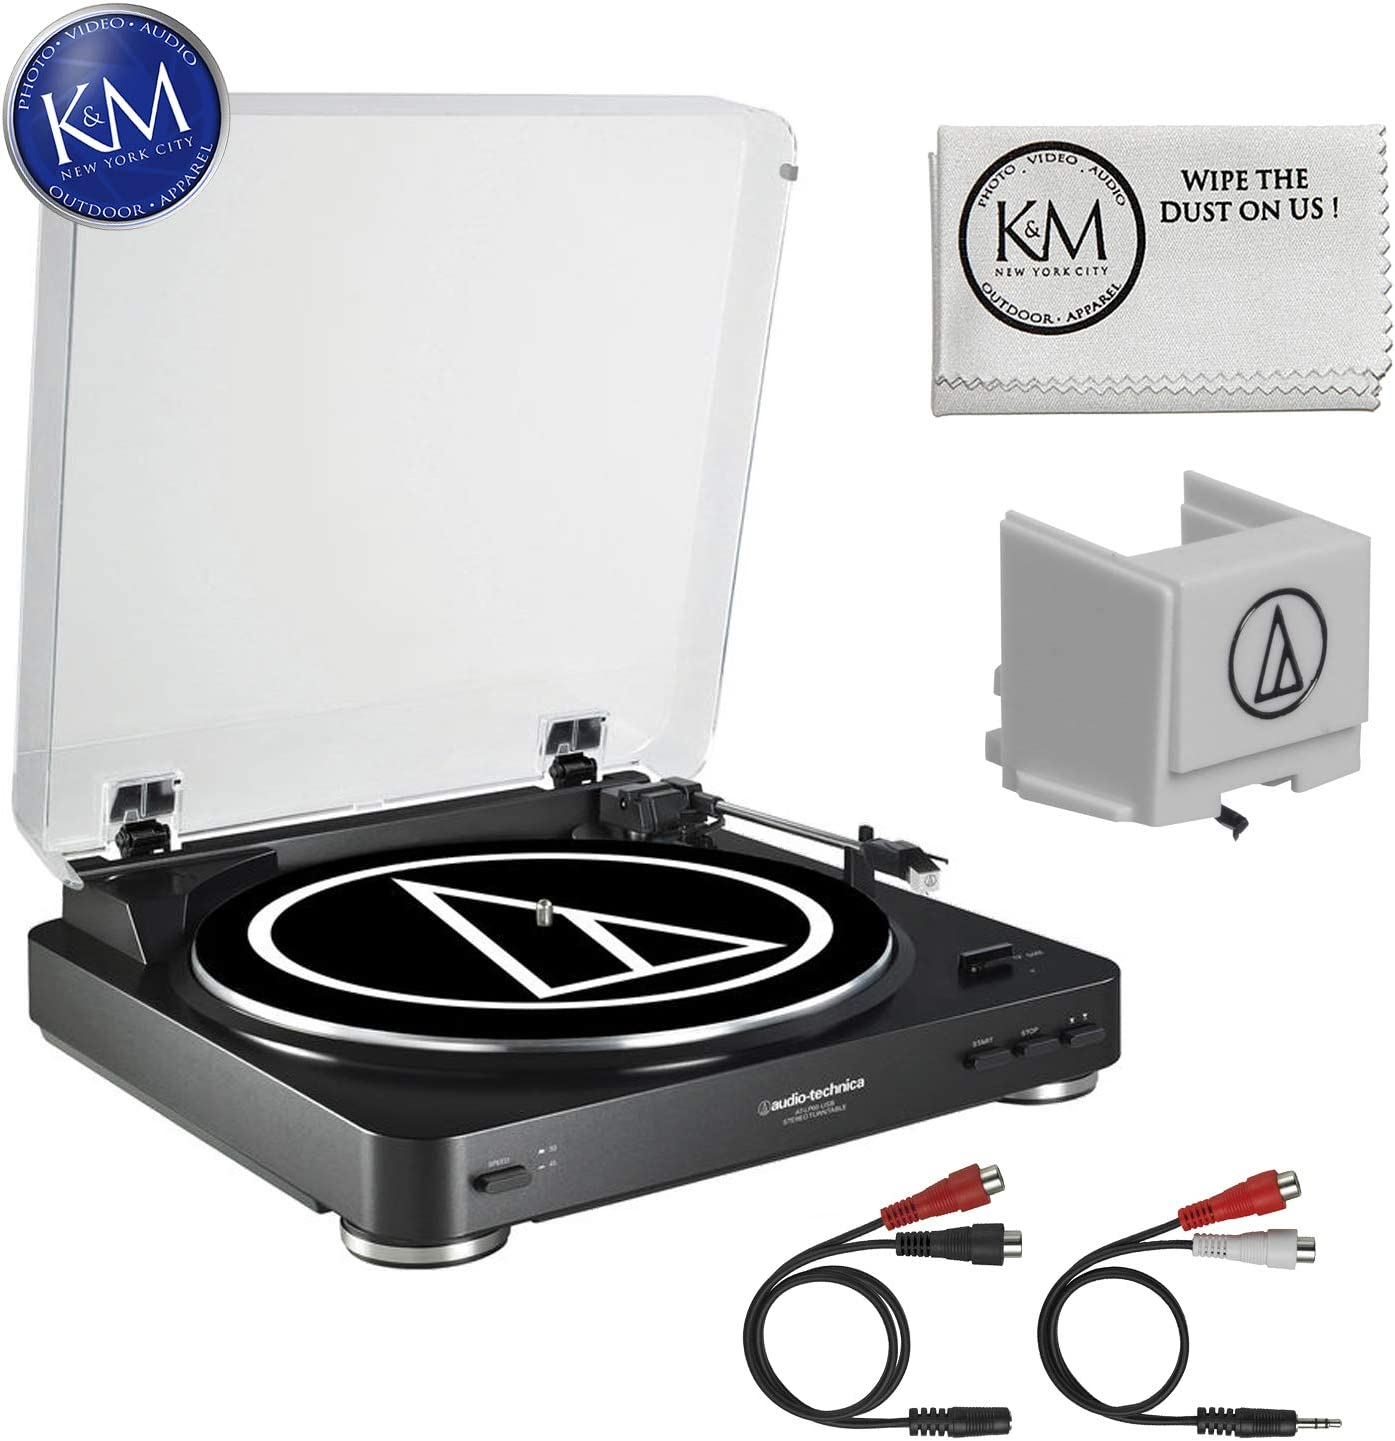 Audio-Technica AT-LP60 USB Turntable (Black) + Extra ATN3600L Stylus + K&M Cloth 71fX2BjCpQ1LSL1500_